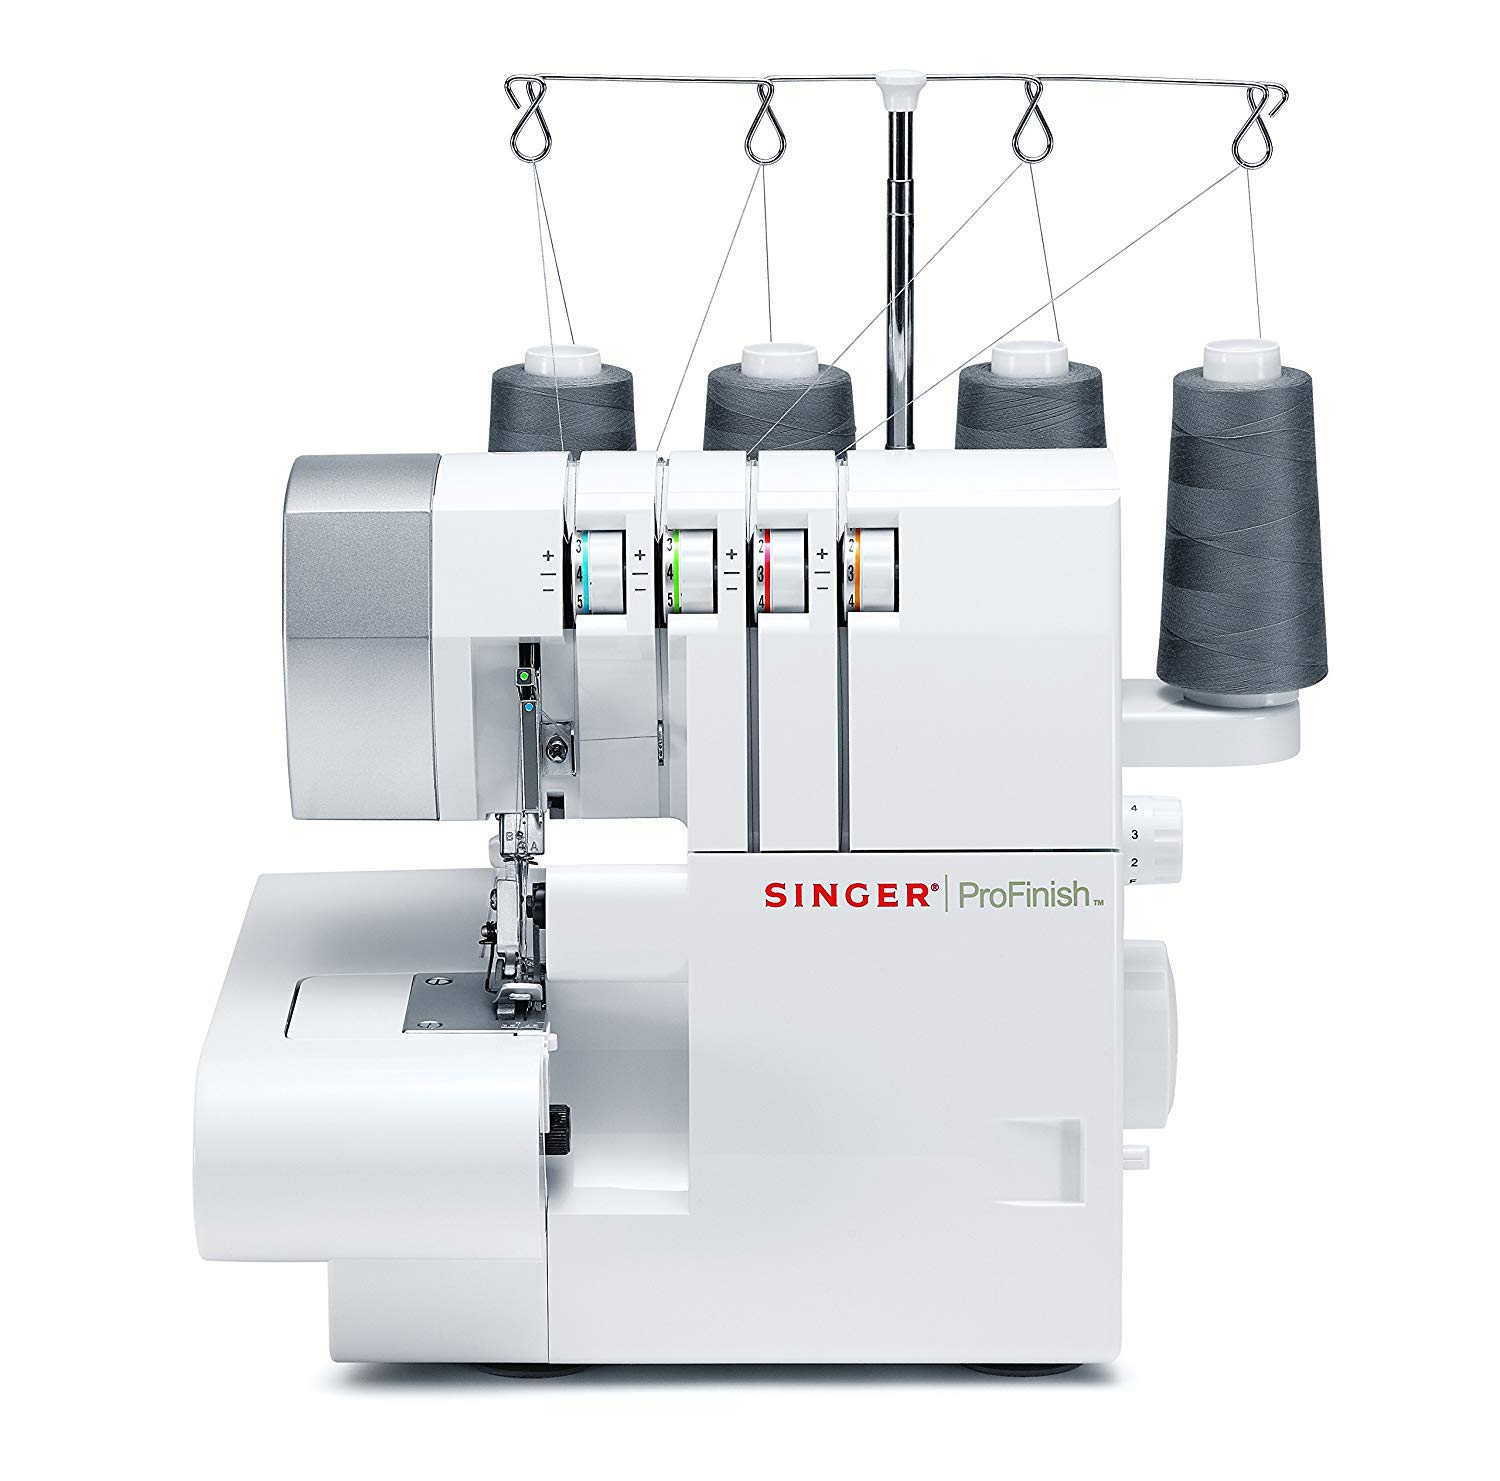 Top 6 Best Serger Sewing Machine (2020 Reviews & Buying Guide) 2